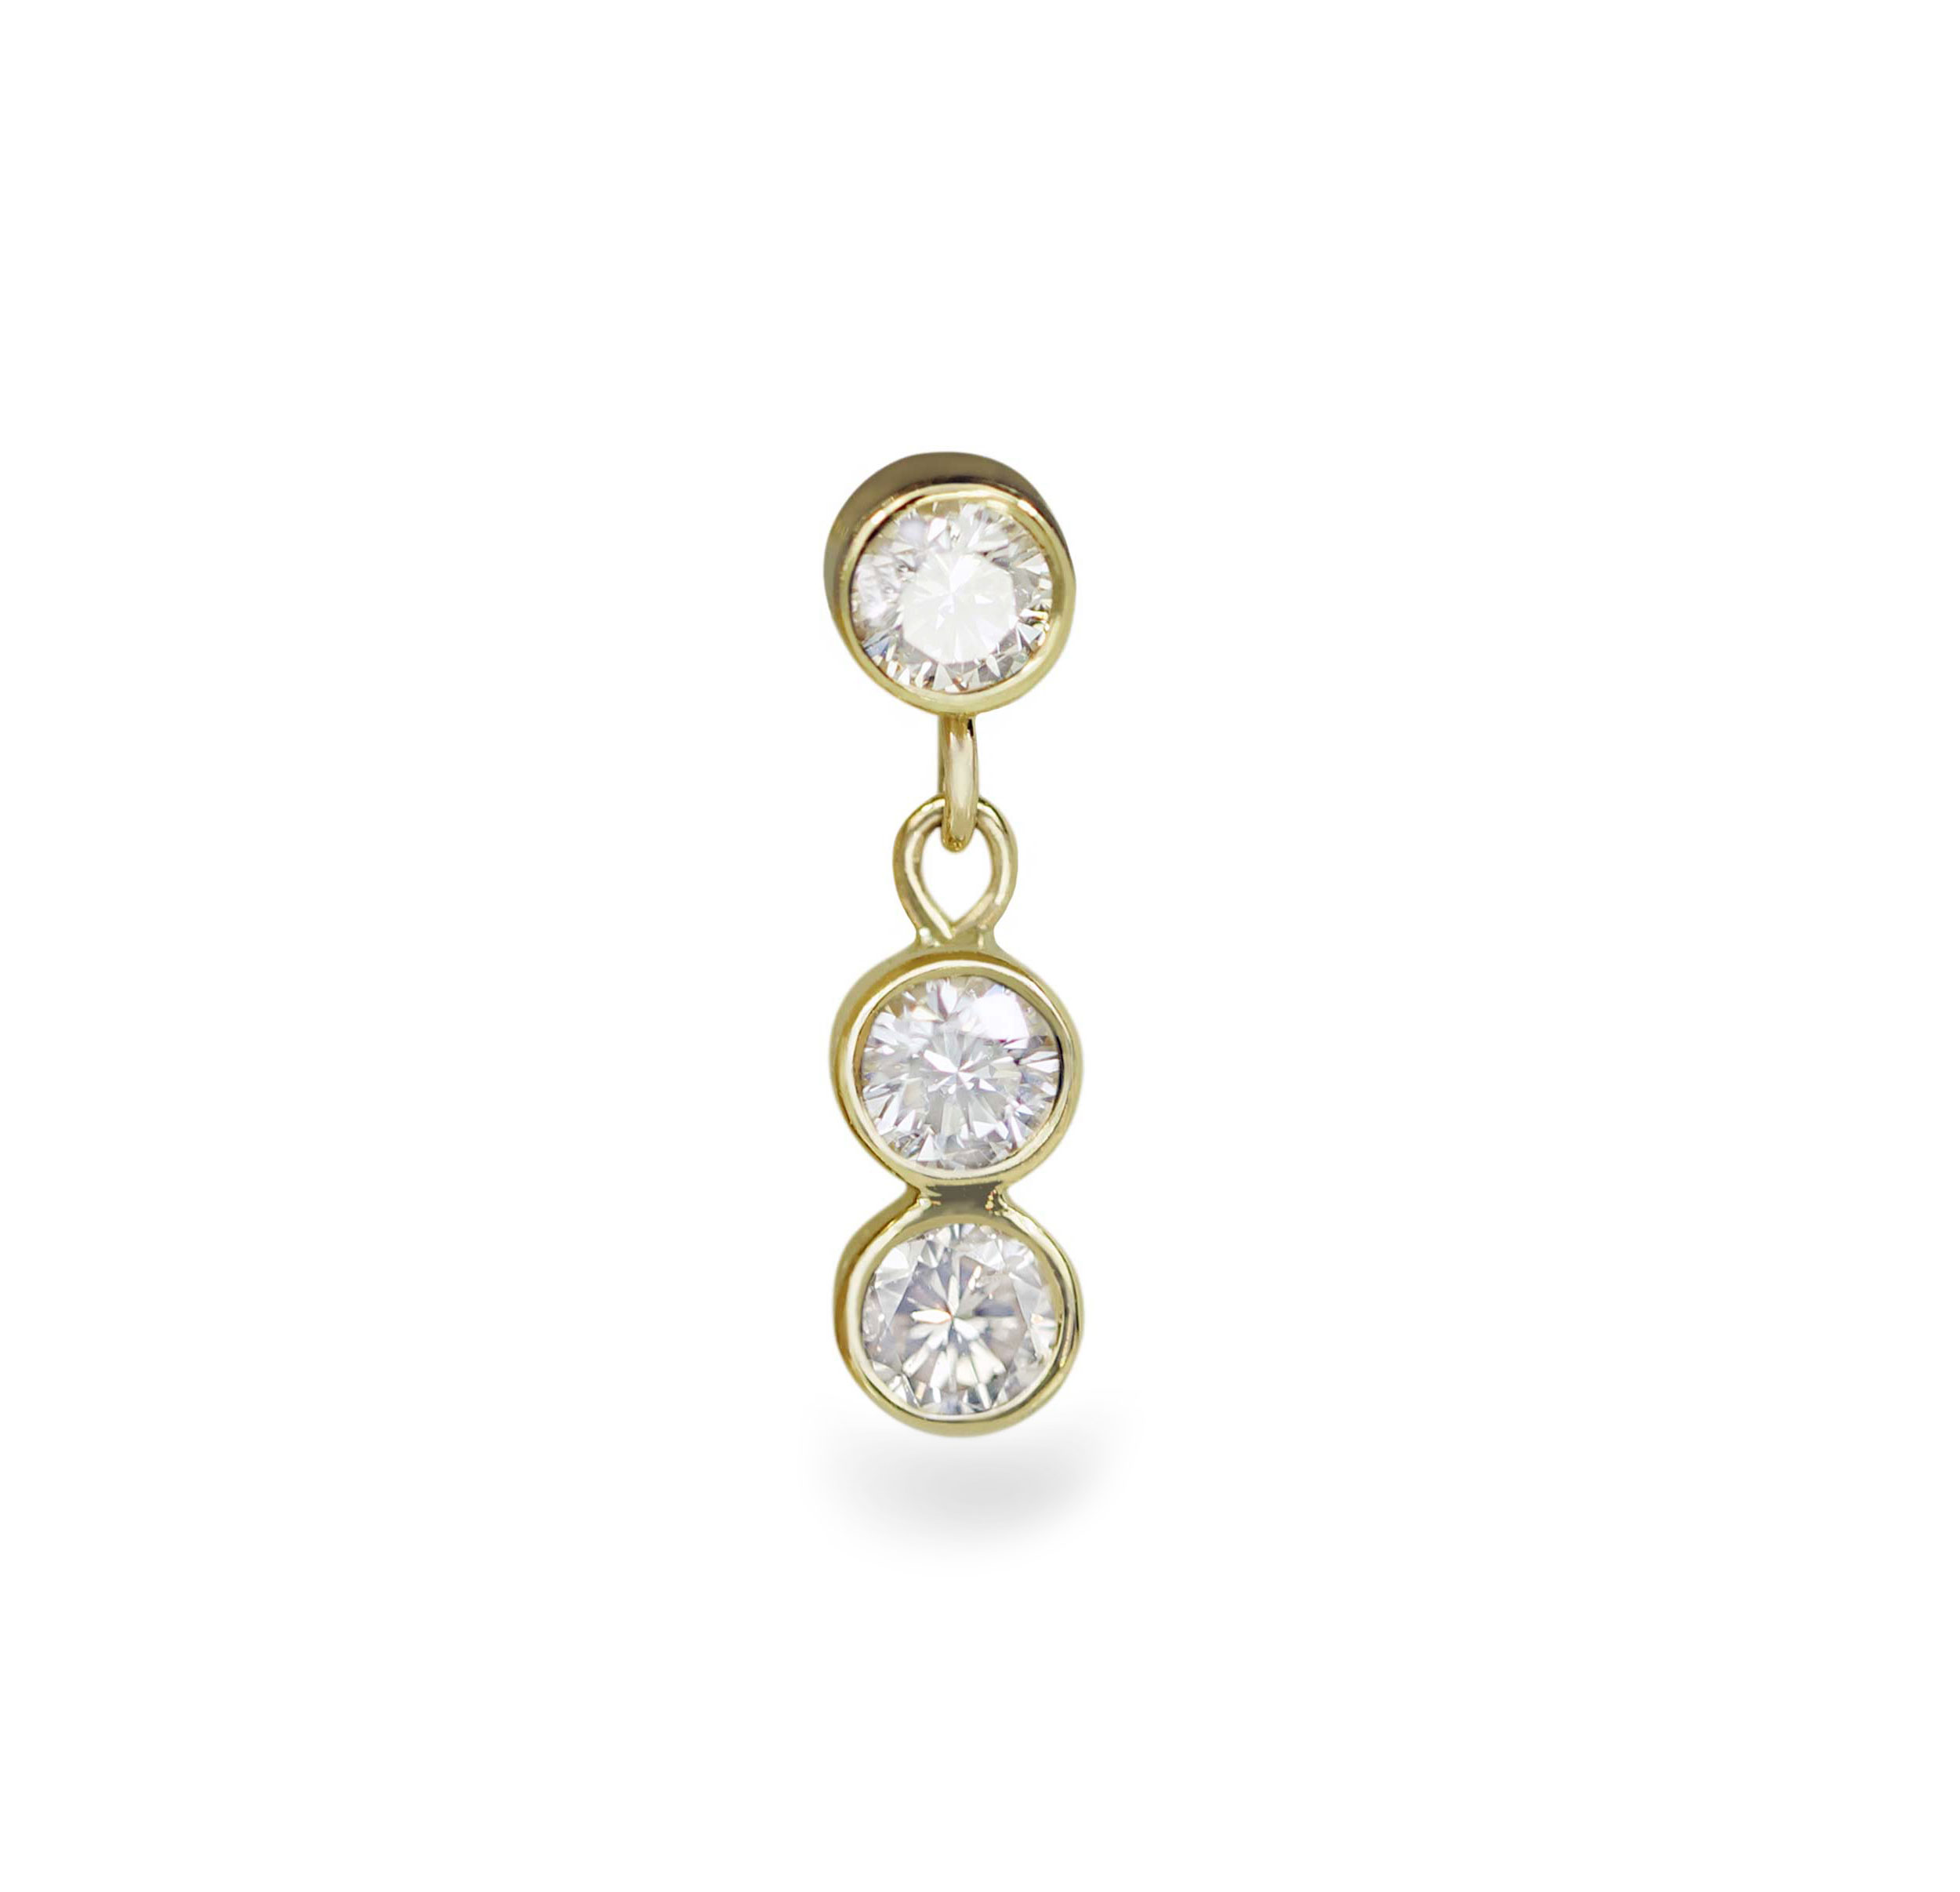 96856a875 Where to buy golden piercing jewellery We make 18k solid gold cartilage  earrings We sell golden